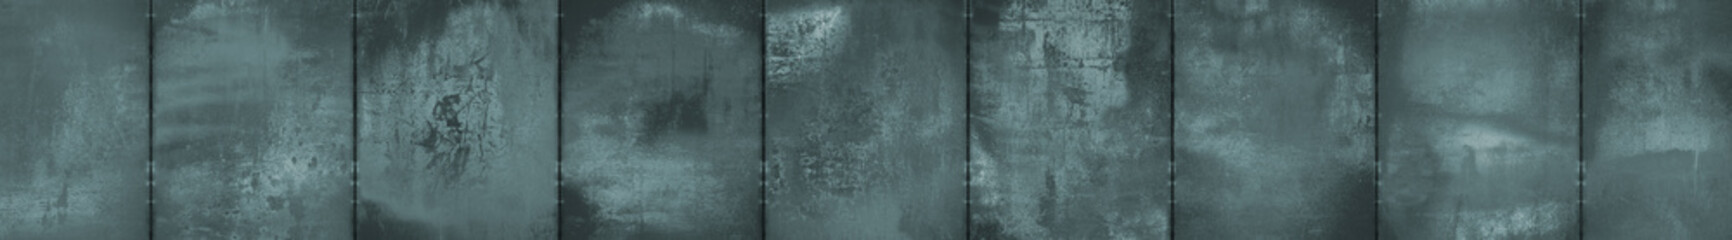 Monochrome Grungy Panoramic Metal Background (Letterbox Format)